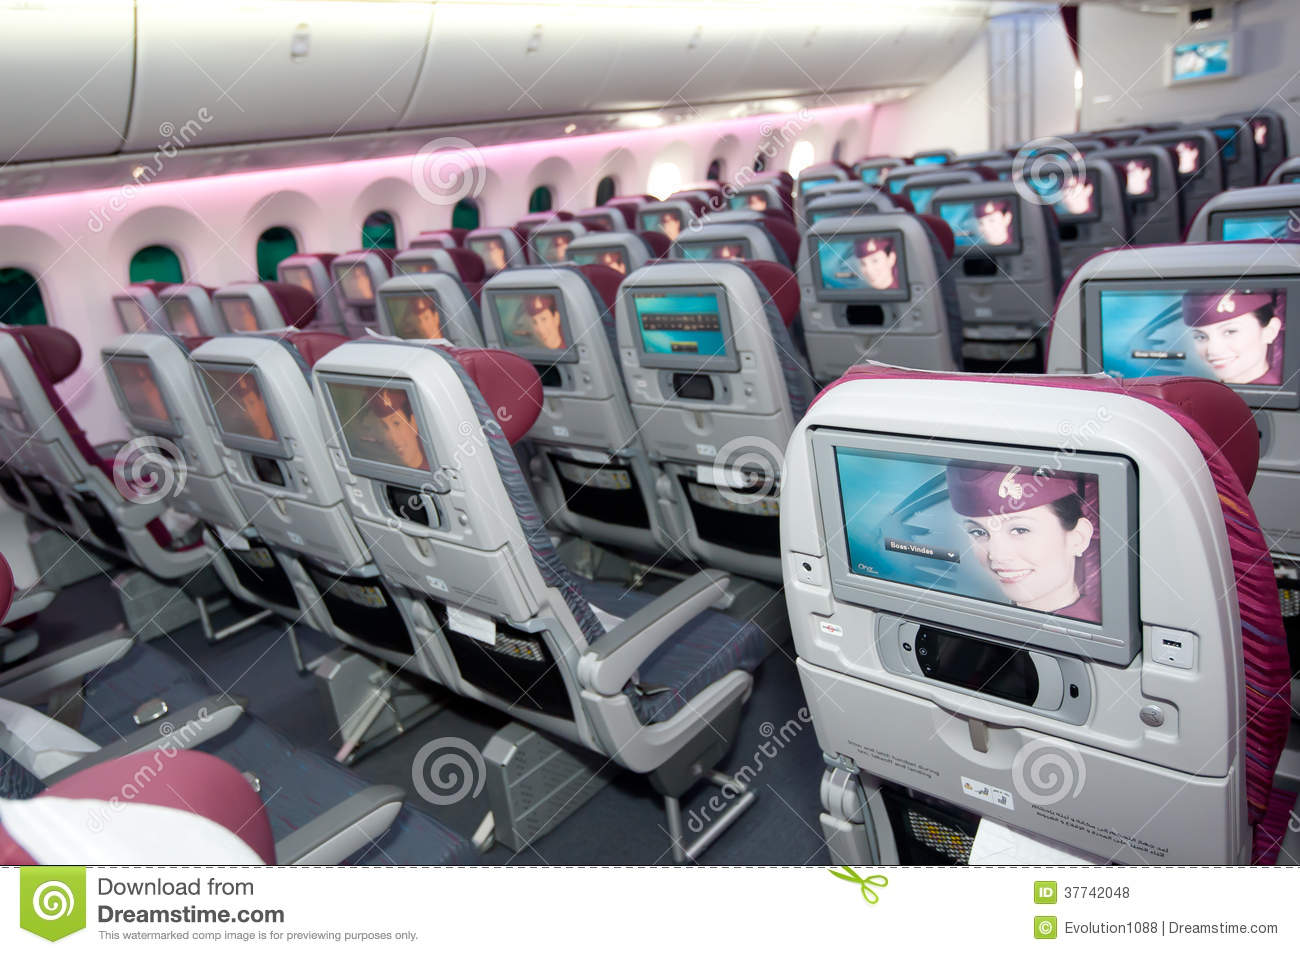 Qatar Airways Economy Class At Singapore Airshow 2014 ...